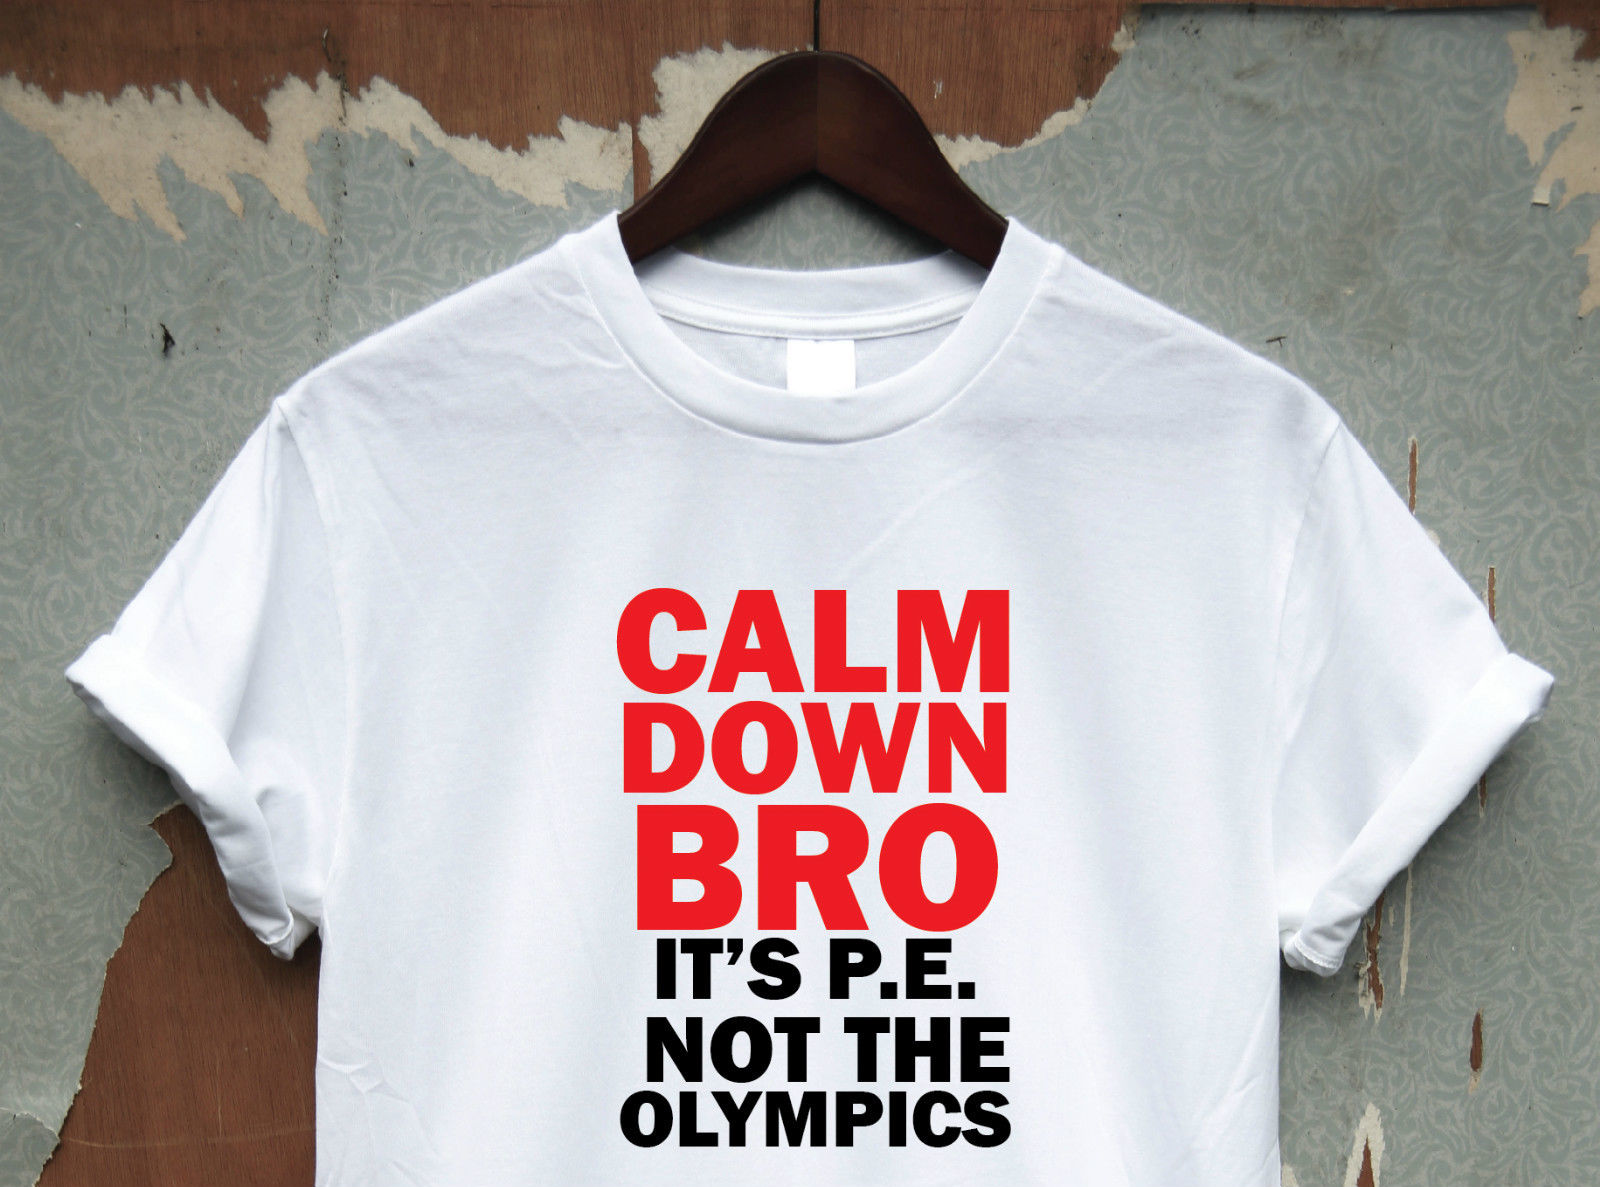 http   www.ebay.co.uk itm CALM-DOWN-BRO-T-HIPSTER-INDIE-SWAG-FUNNY-COOL- SHIRT-TOP-MENS-WOMENS- 171356607948 pt UK Men s T Shirts var  hash item27e5a655cc  ... f1d6803ade